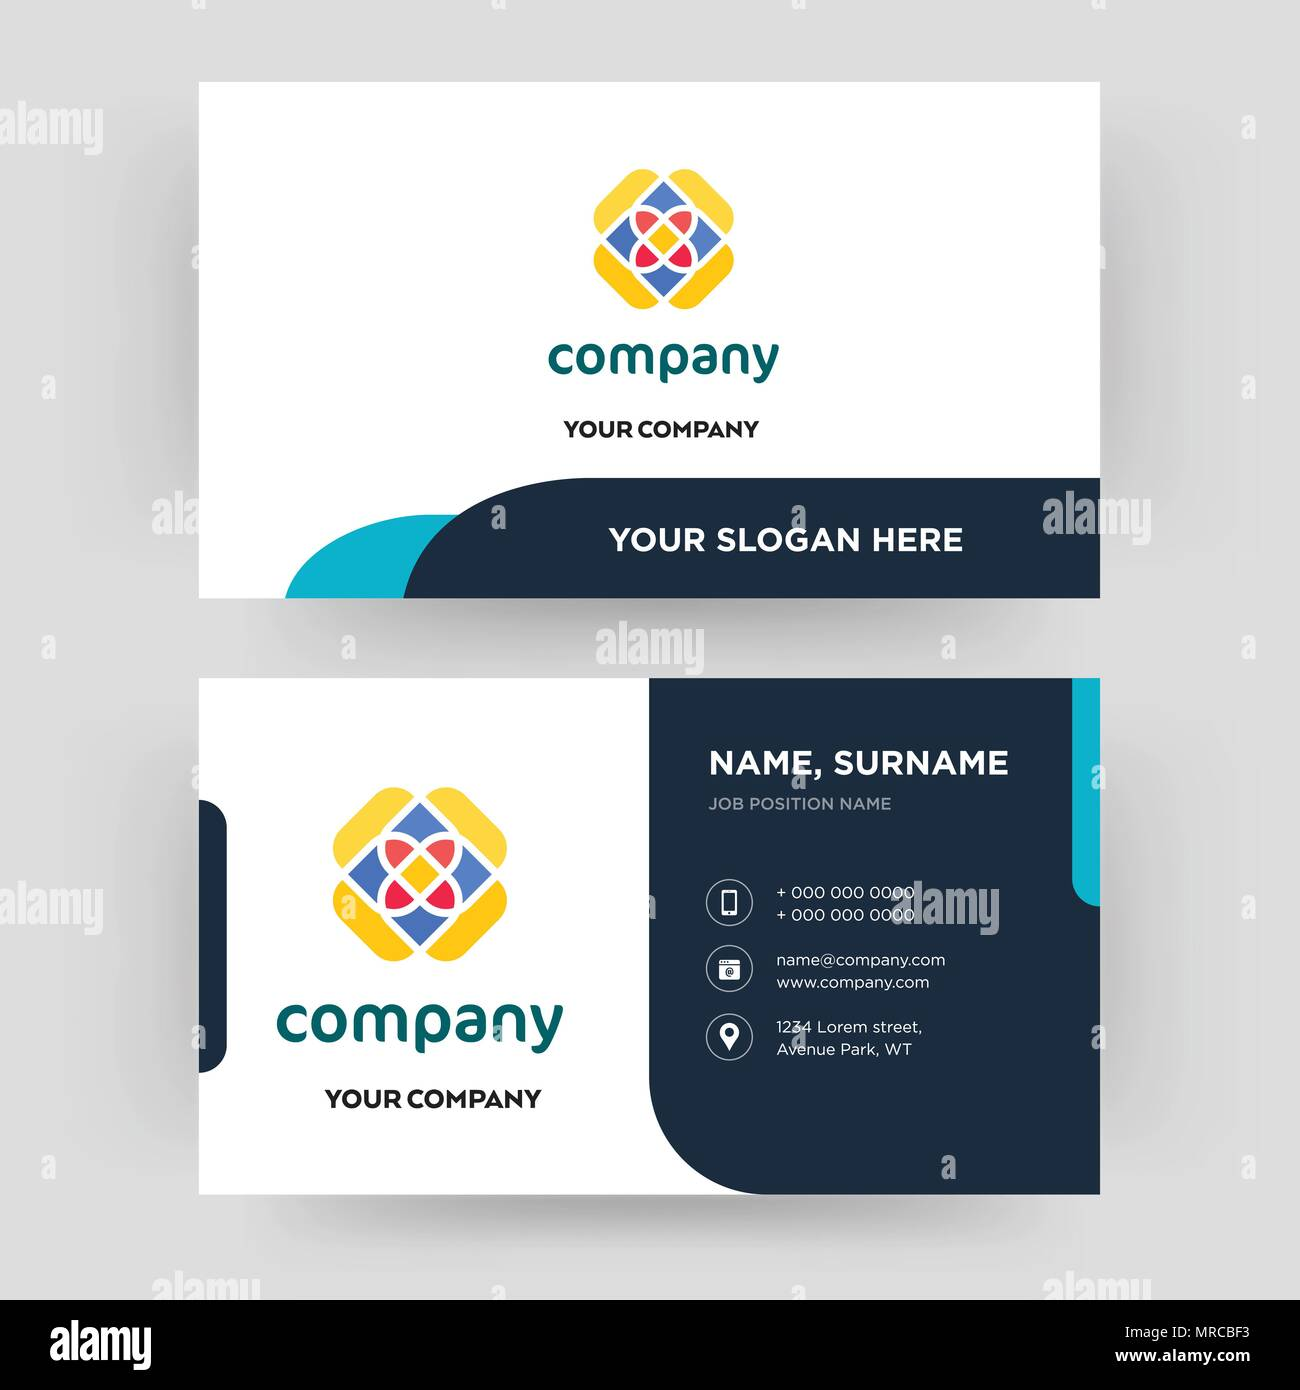 Free business card design template visiting for your company free business card design template visiting for your company modern creative and clean identity card vector fbccfo Choice Image